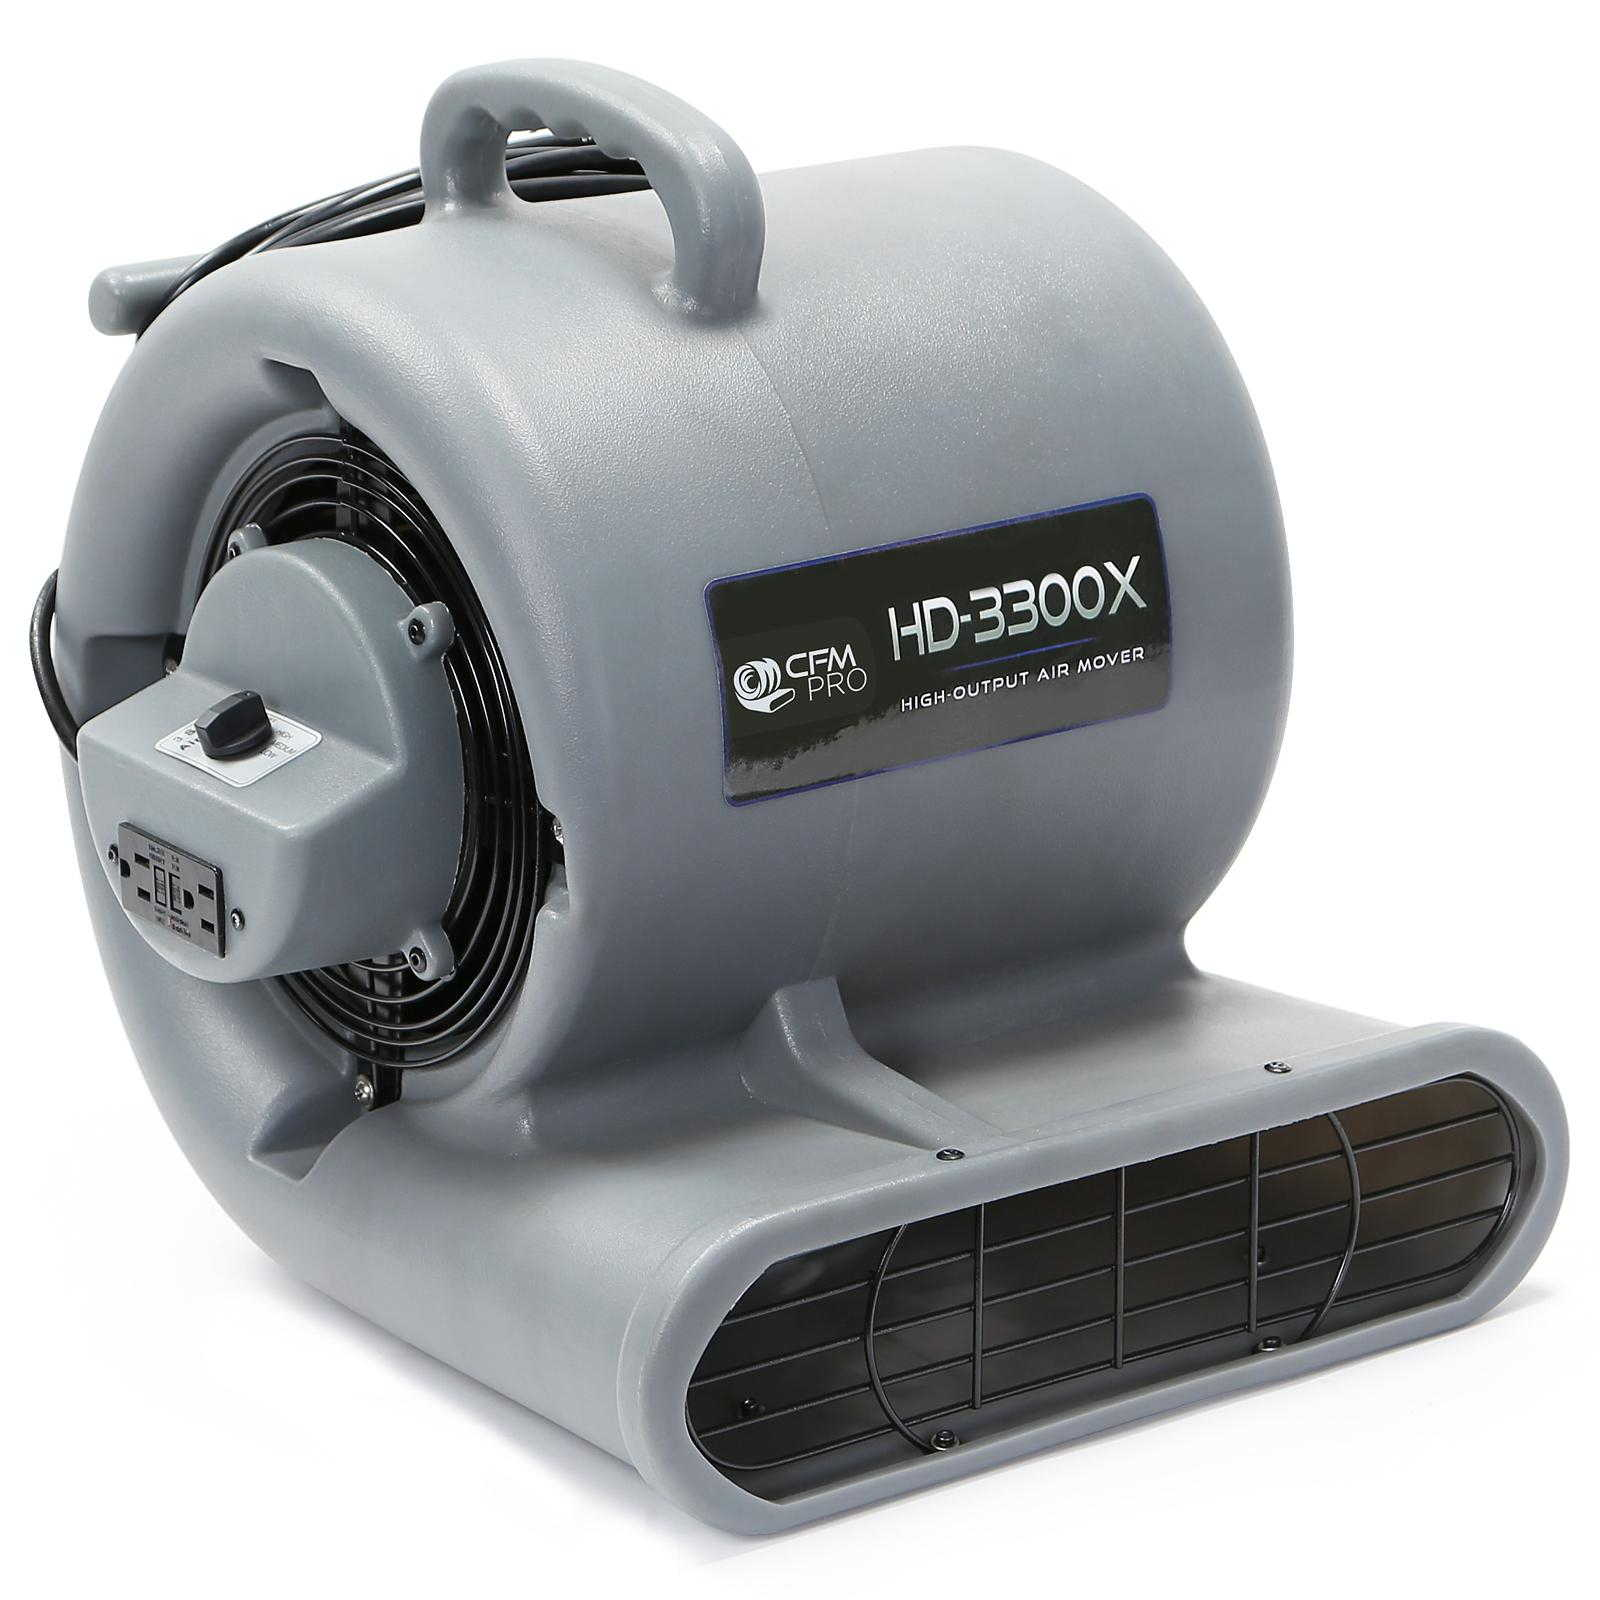 CFM PRO Air Mover & Carpet Dryer Blower Fan - 3,300 Series